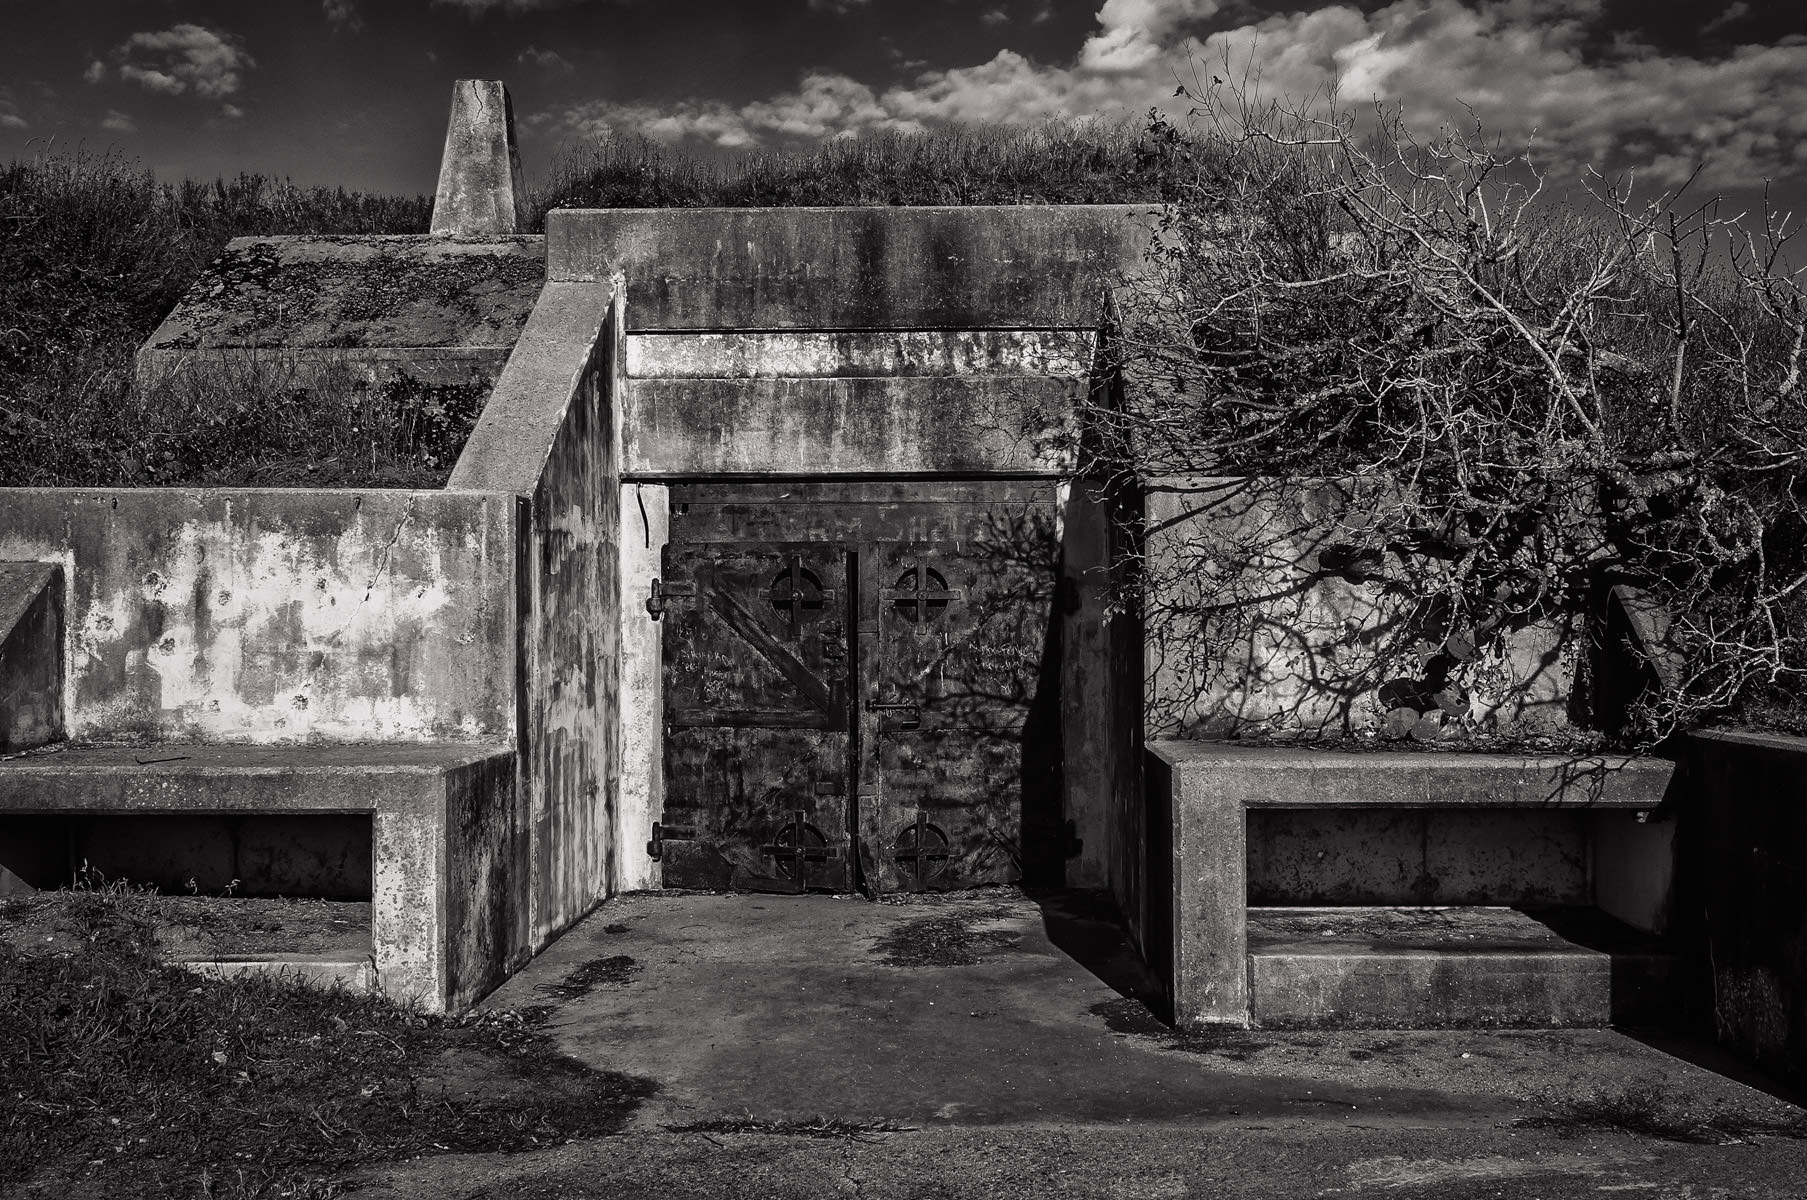 One of the heavily-fortified entrances toBattery 236, located at Fort Travis, Bolivar Peninsula, Texas. This World War II-era fort was tasked with protecting the Houston Ship Channel from possible enemy incursions.